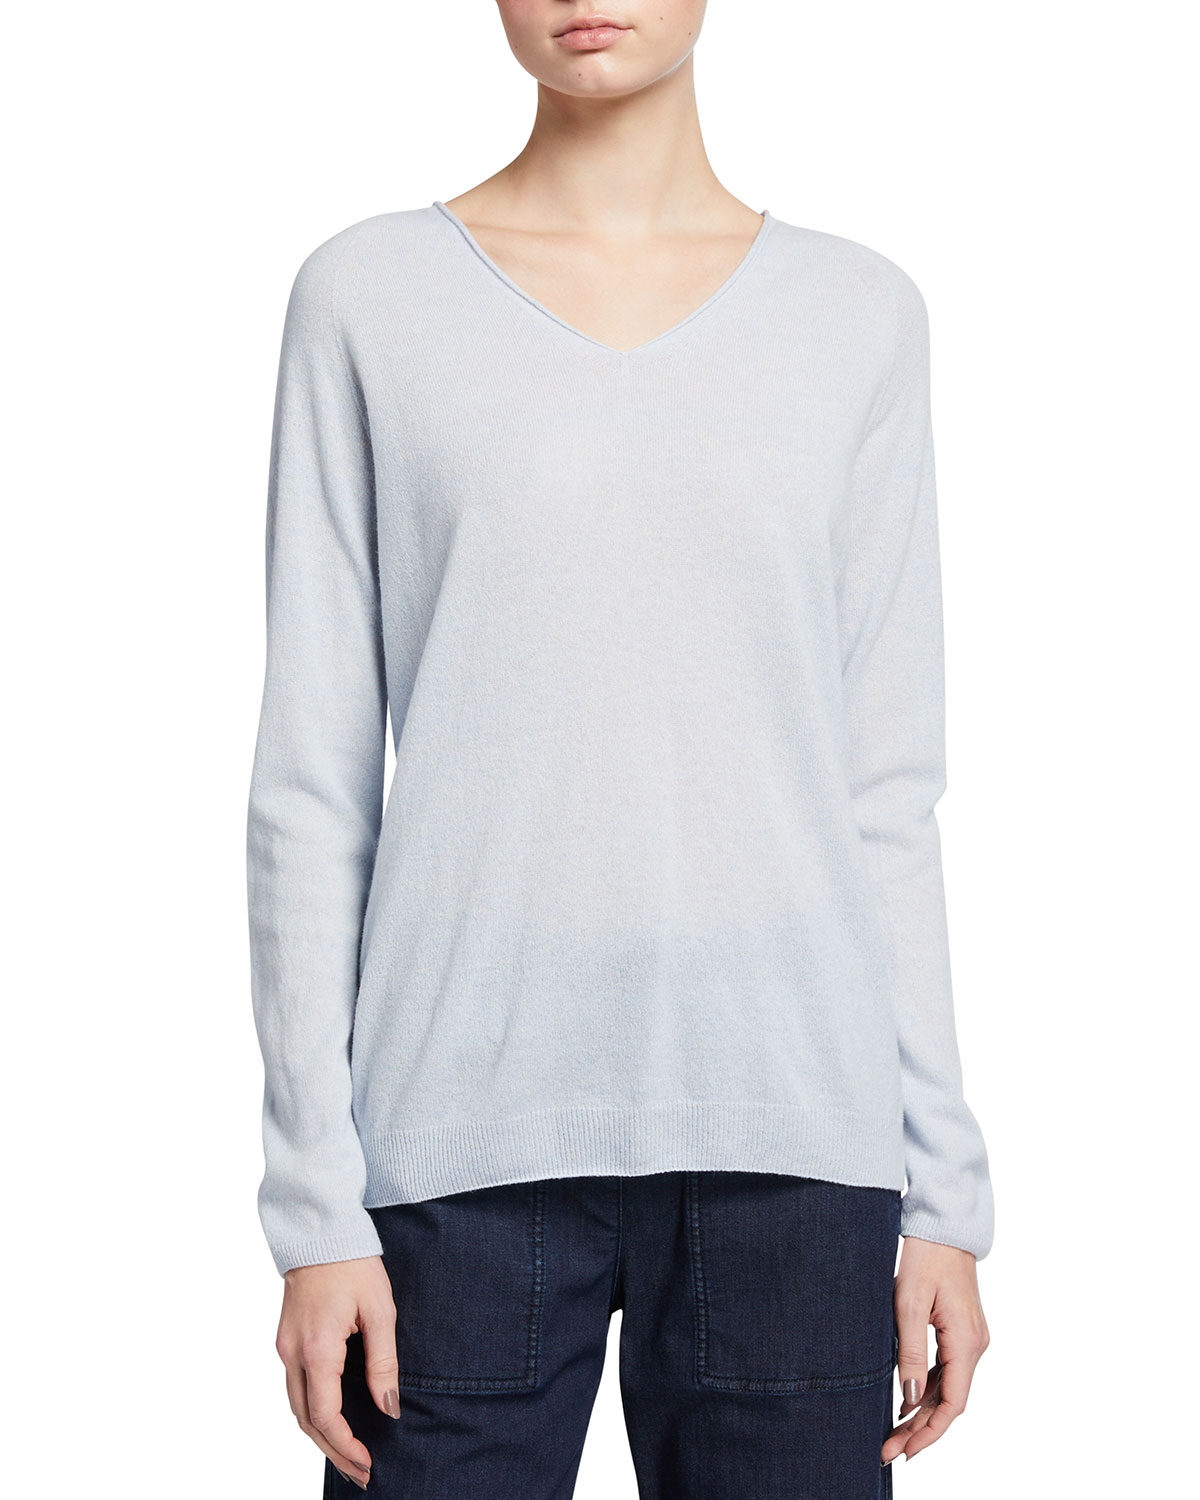 Max Mara Wools WOOL-BLEND V-NECK SWEATER